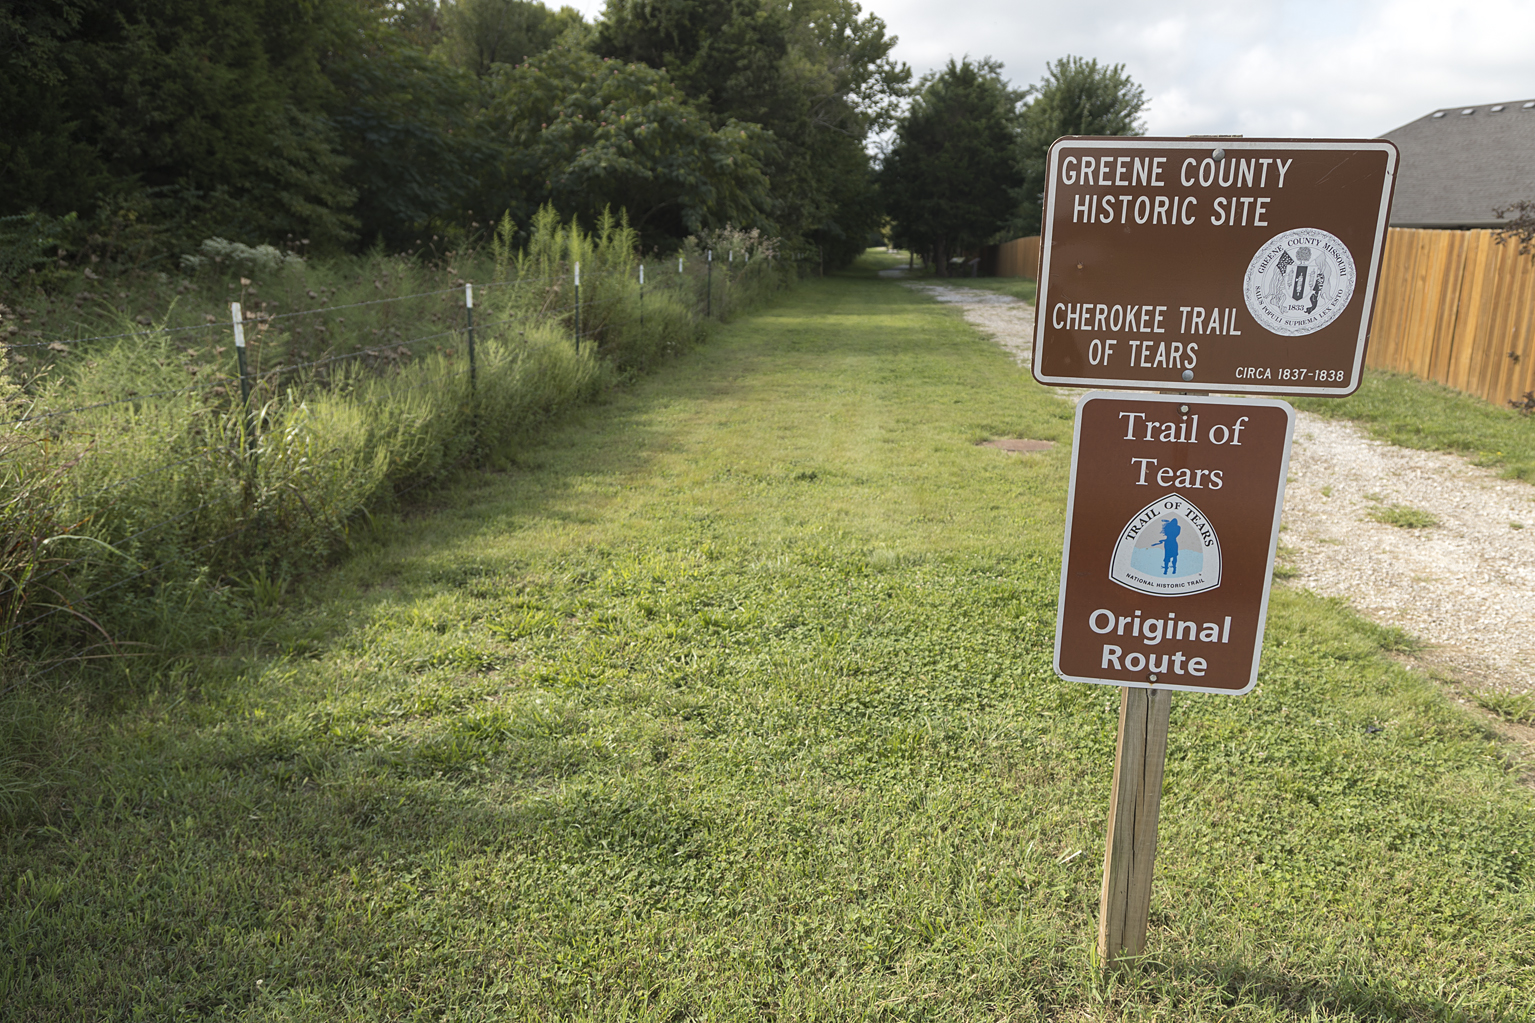 Trail of Tears greenway offers unique walkabout